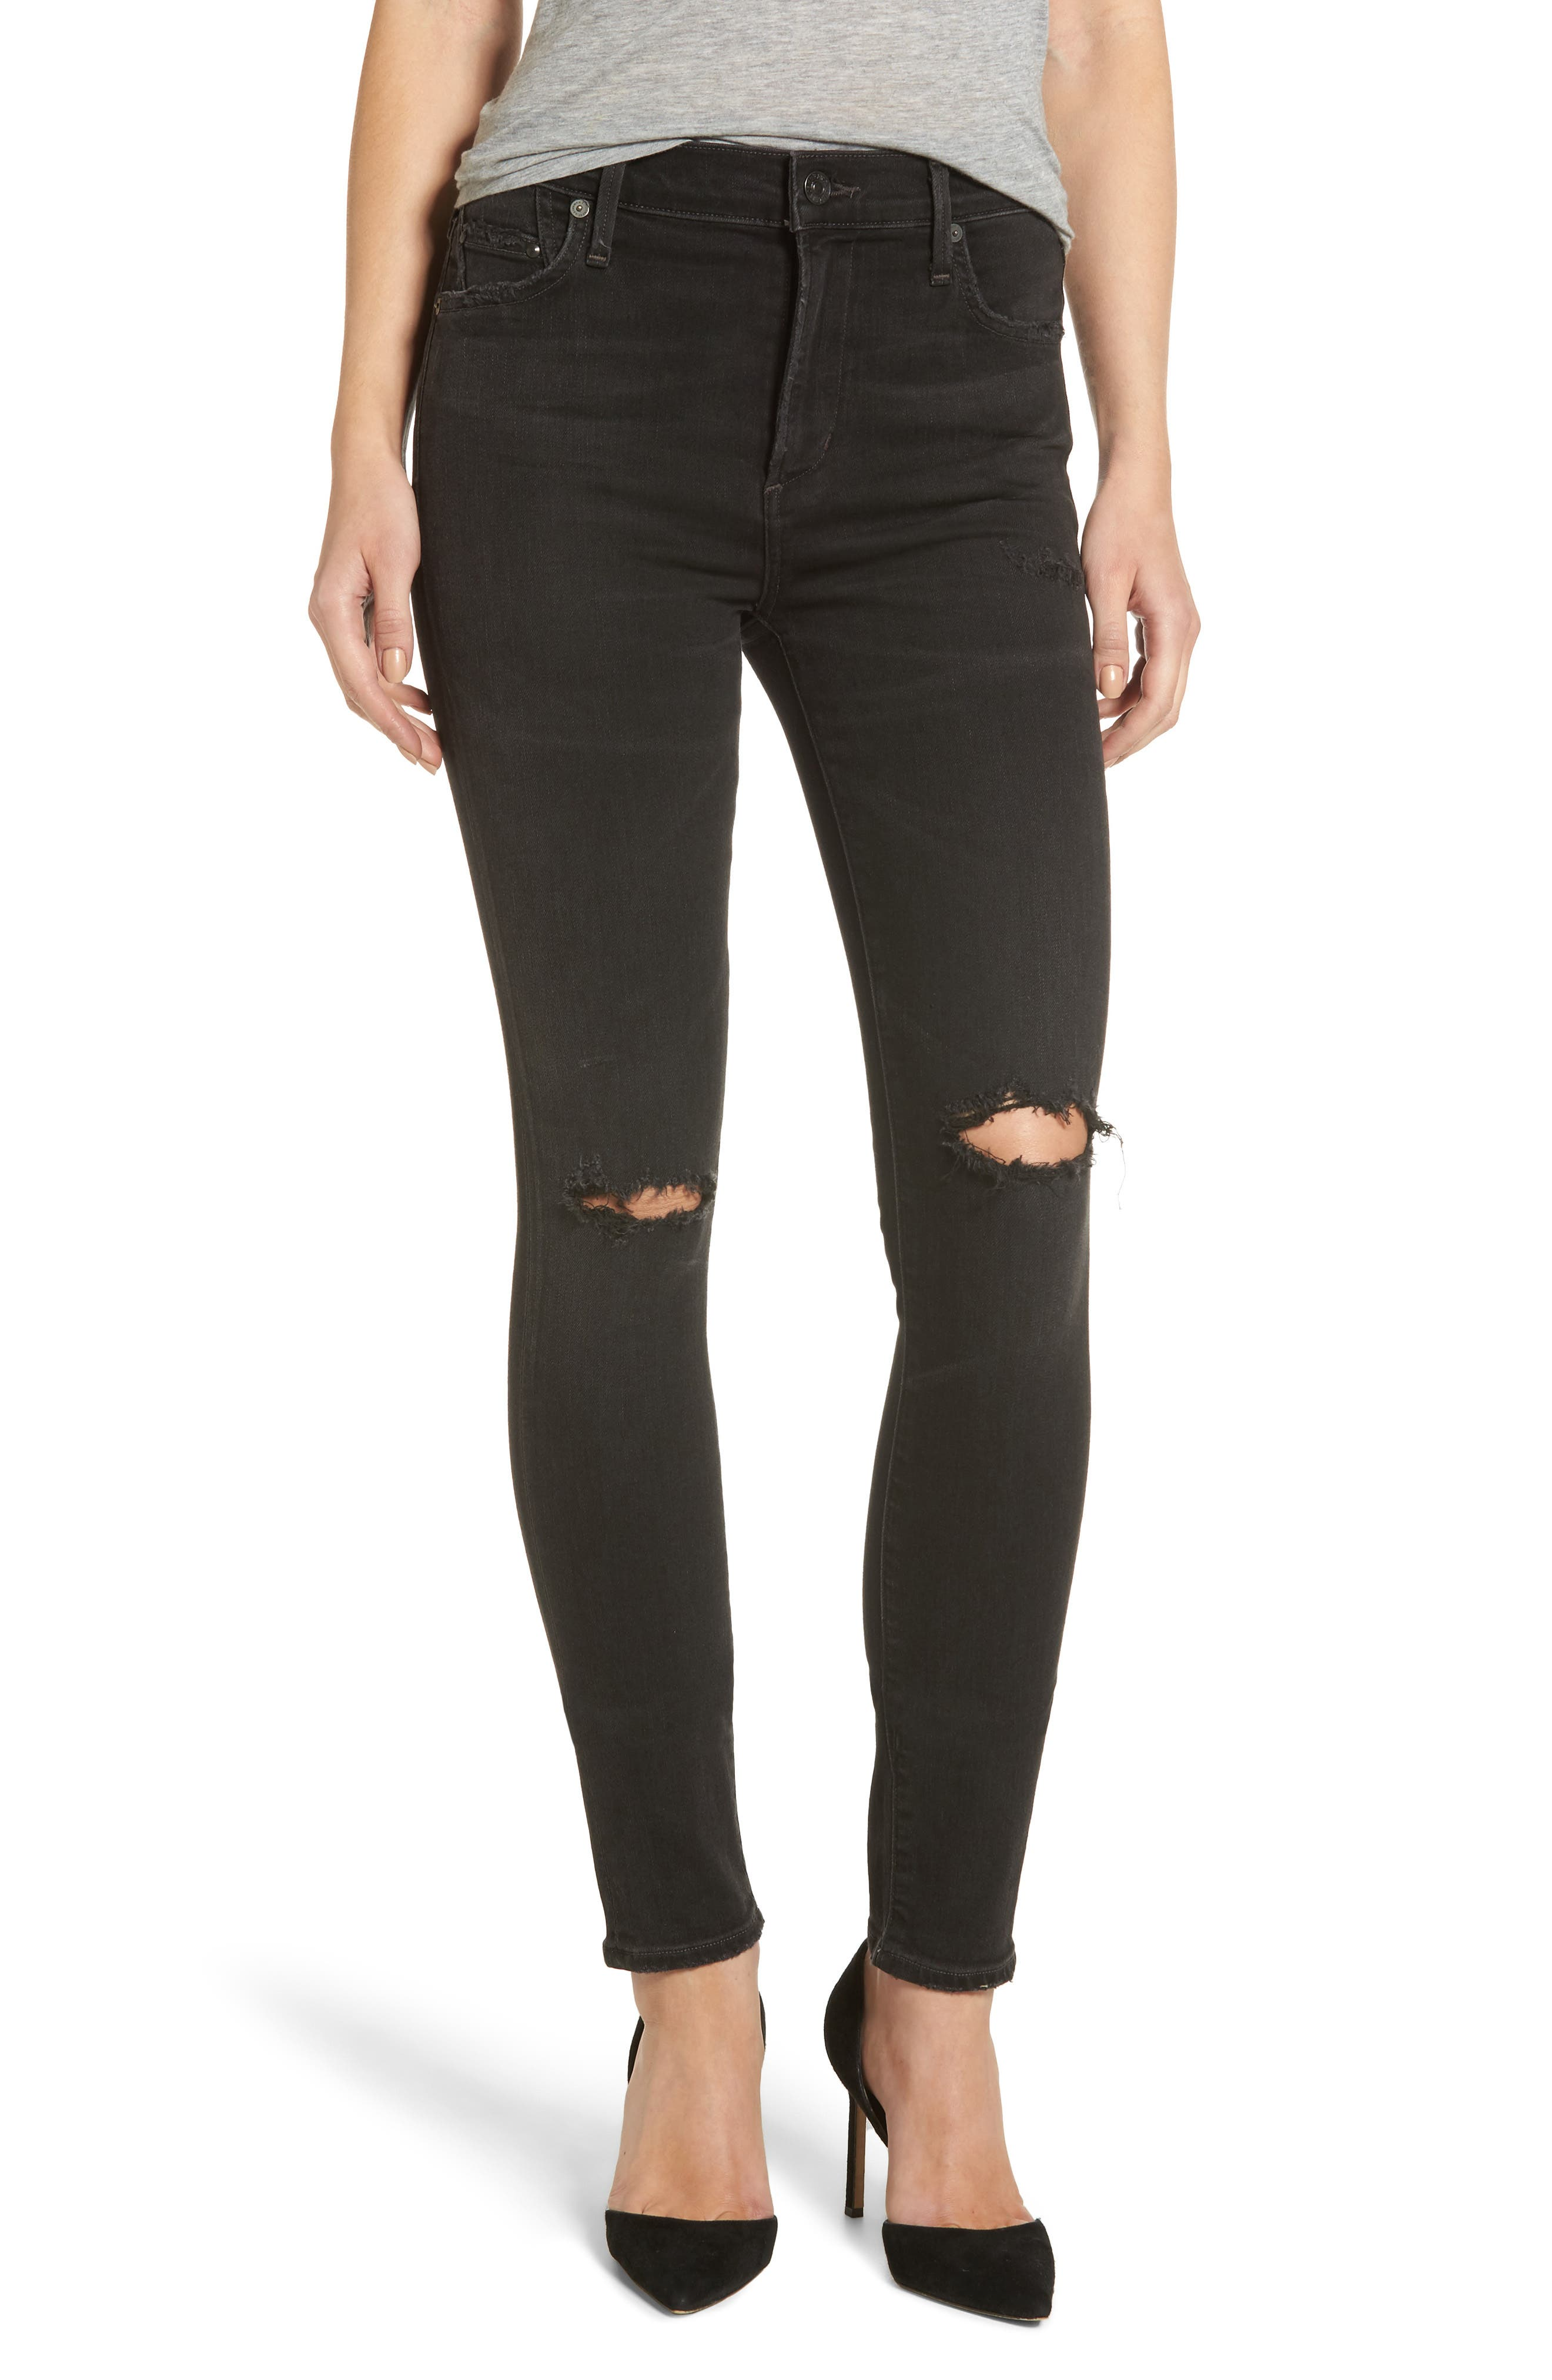 Rocket High Waist Skinny Jeans,                         Main,                         color, Distressed Darkness